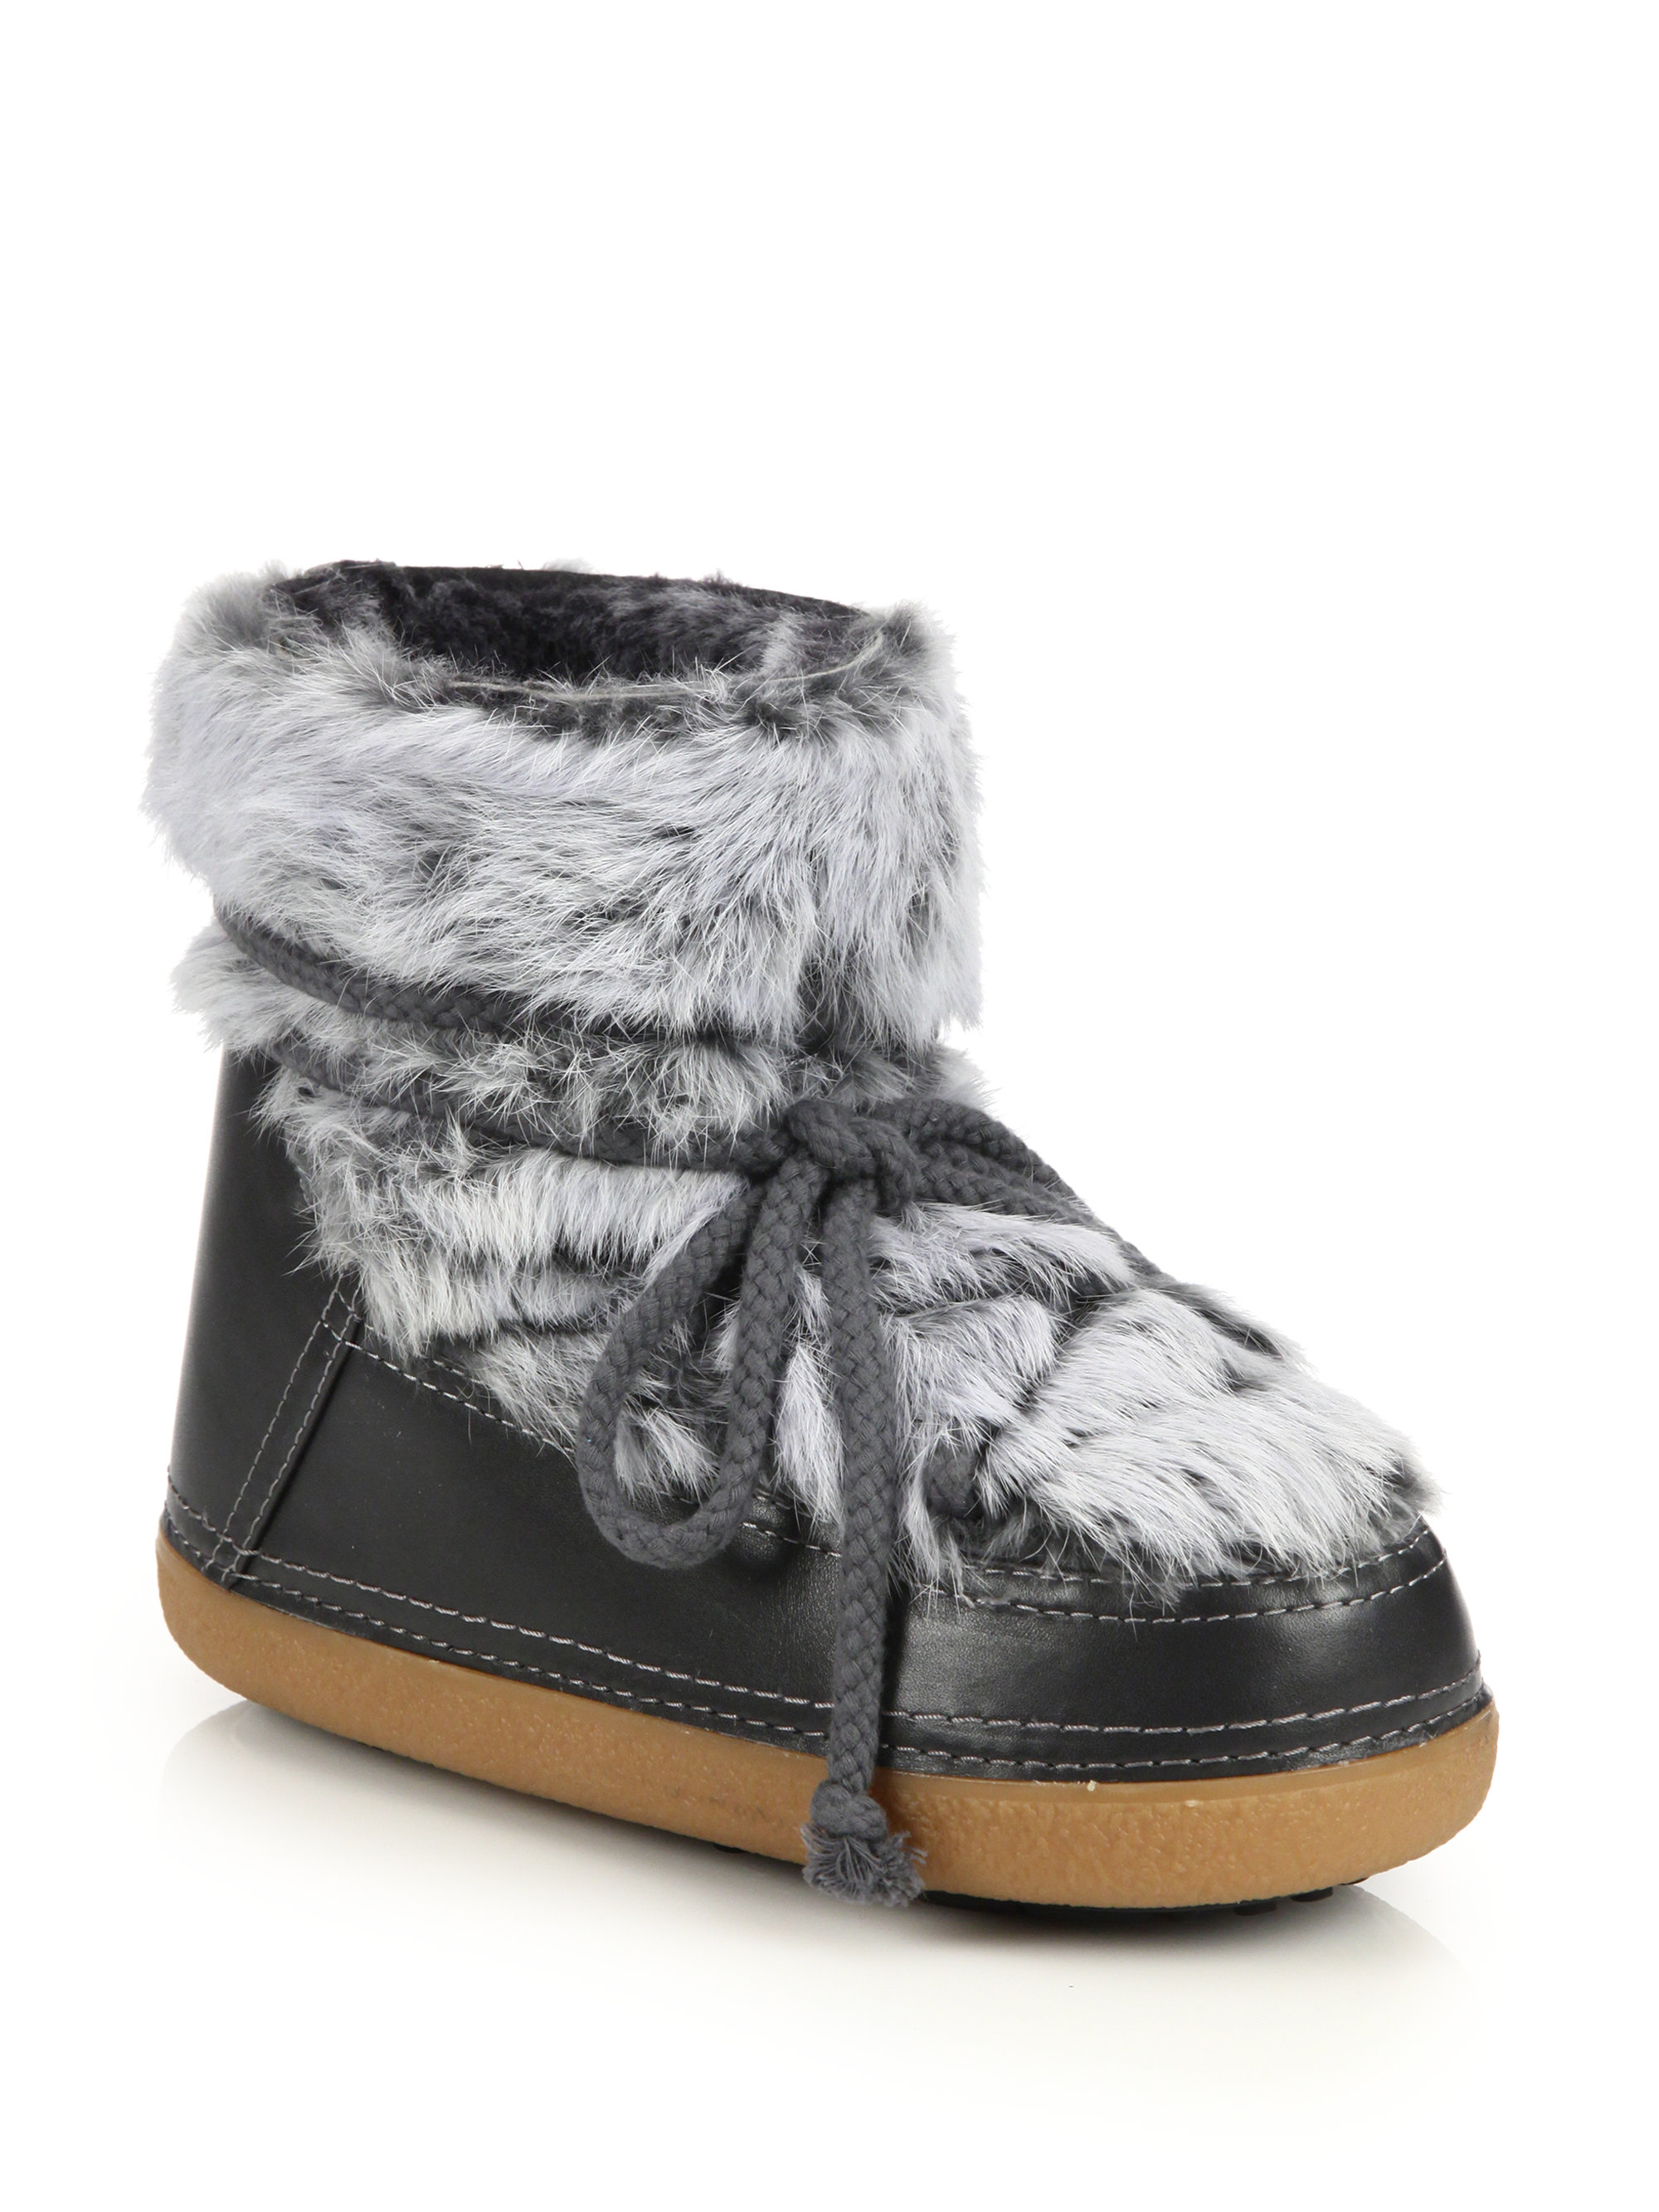 Rabbit Fur Boots Women S Shoes